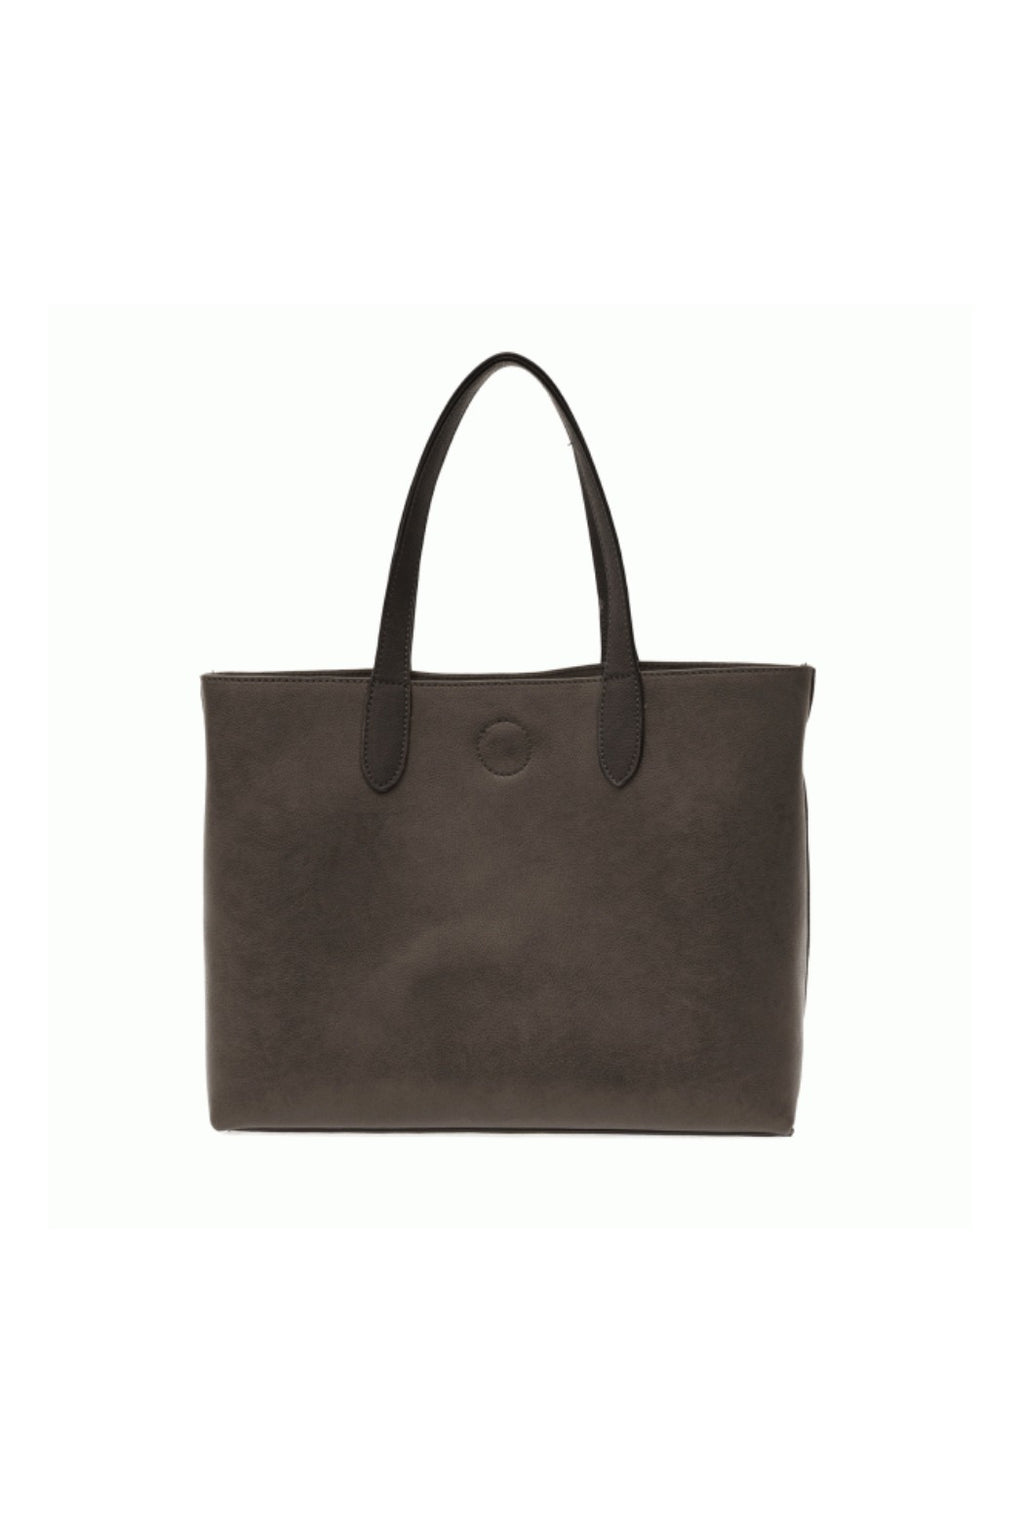 Mariah Convertible Tote - Charcoal/Black